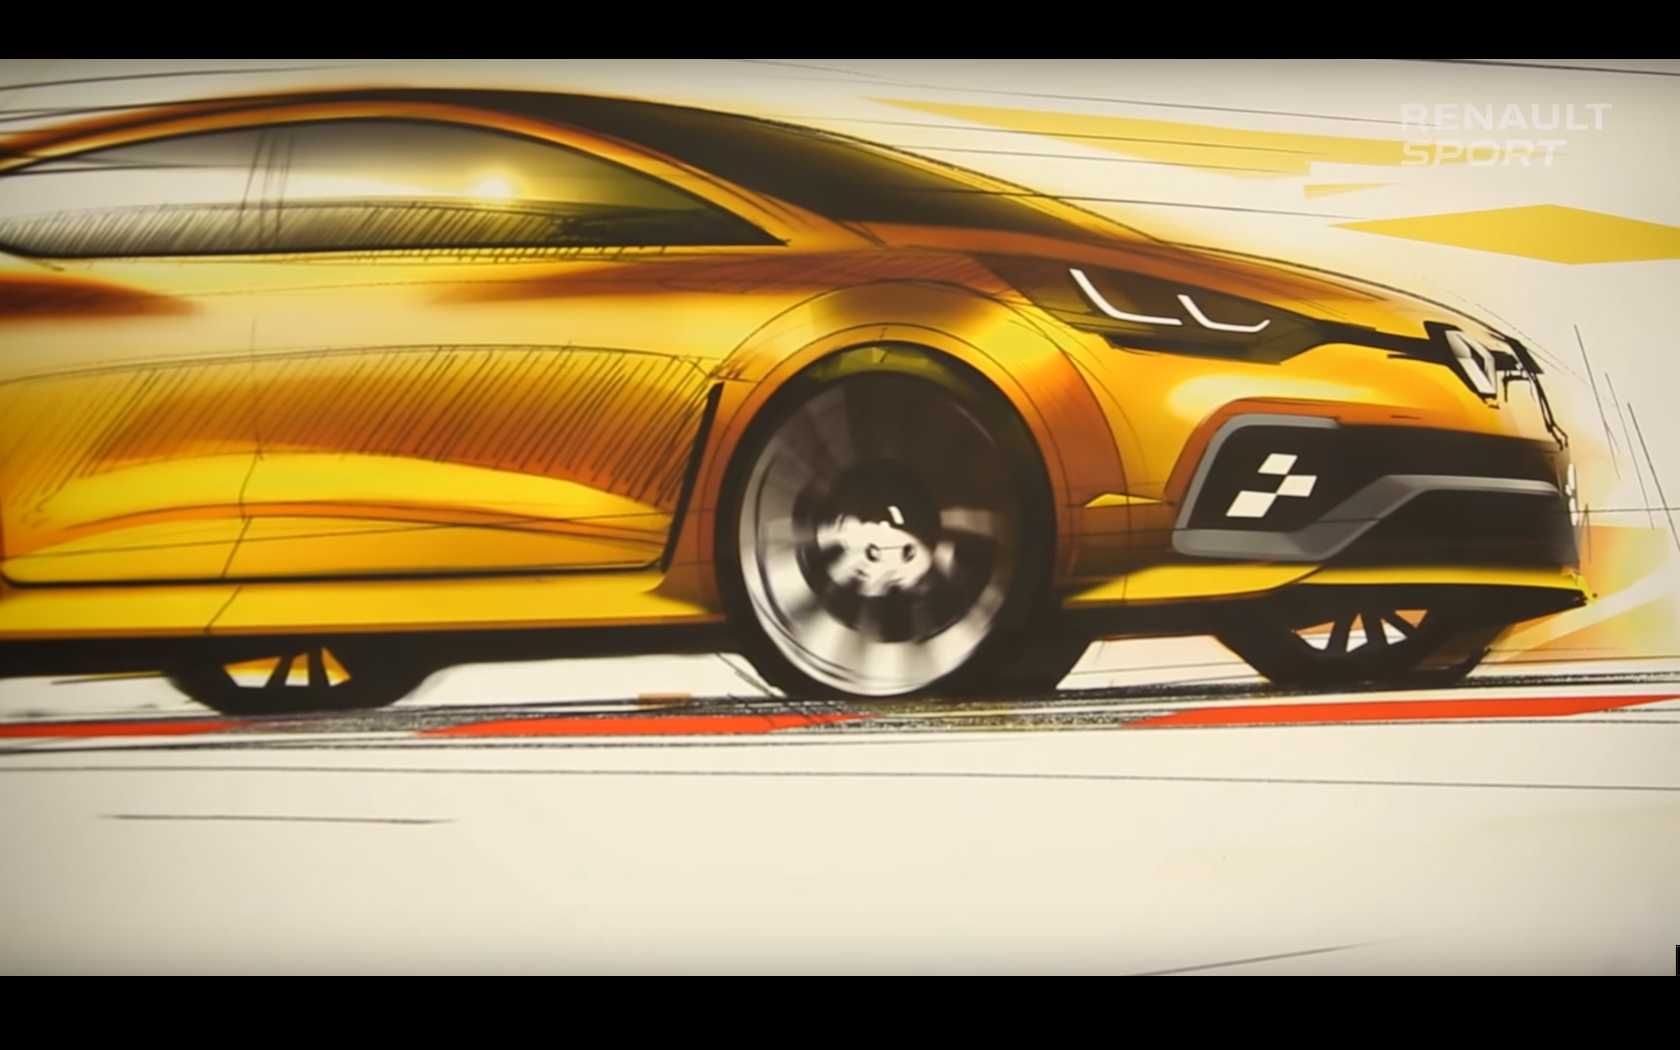 Renault Clio R.S.16 - side-face sketch design by Franck Le Gall